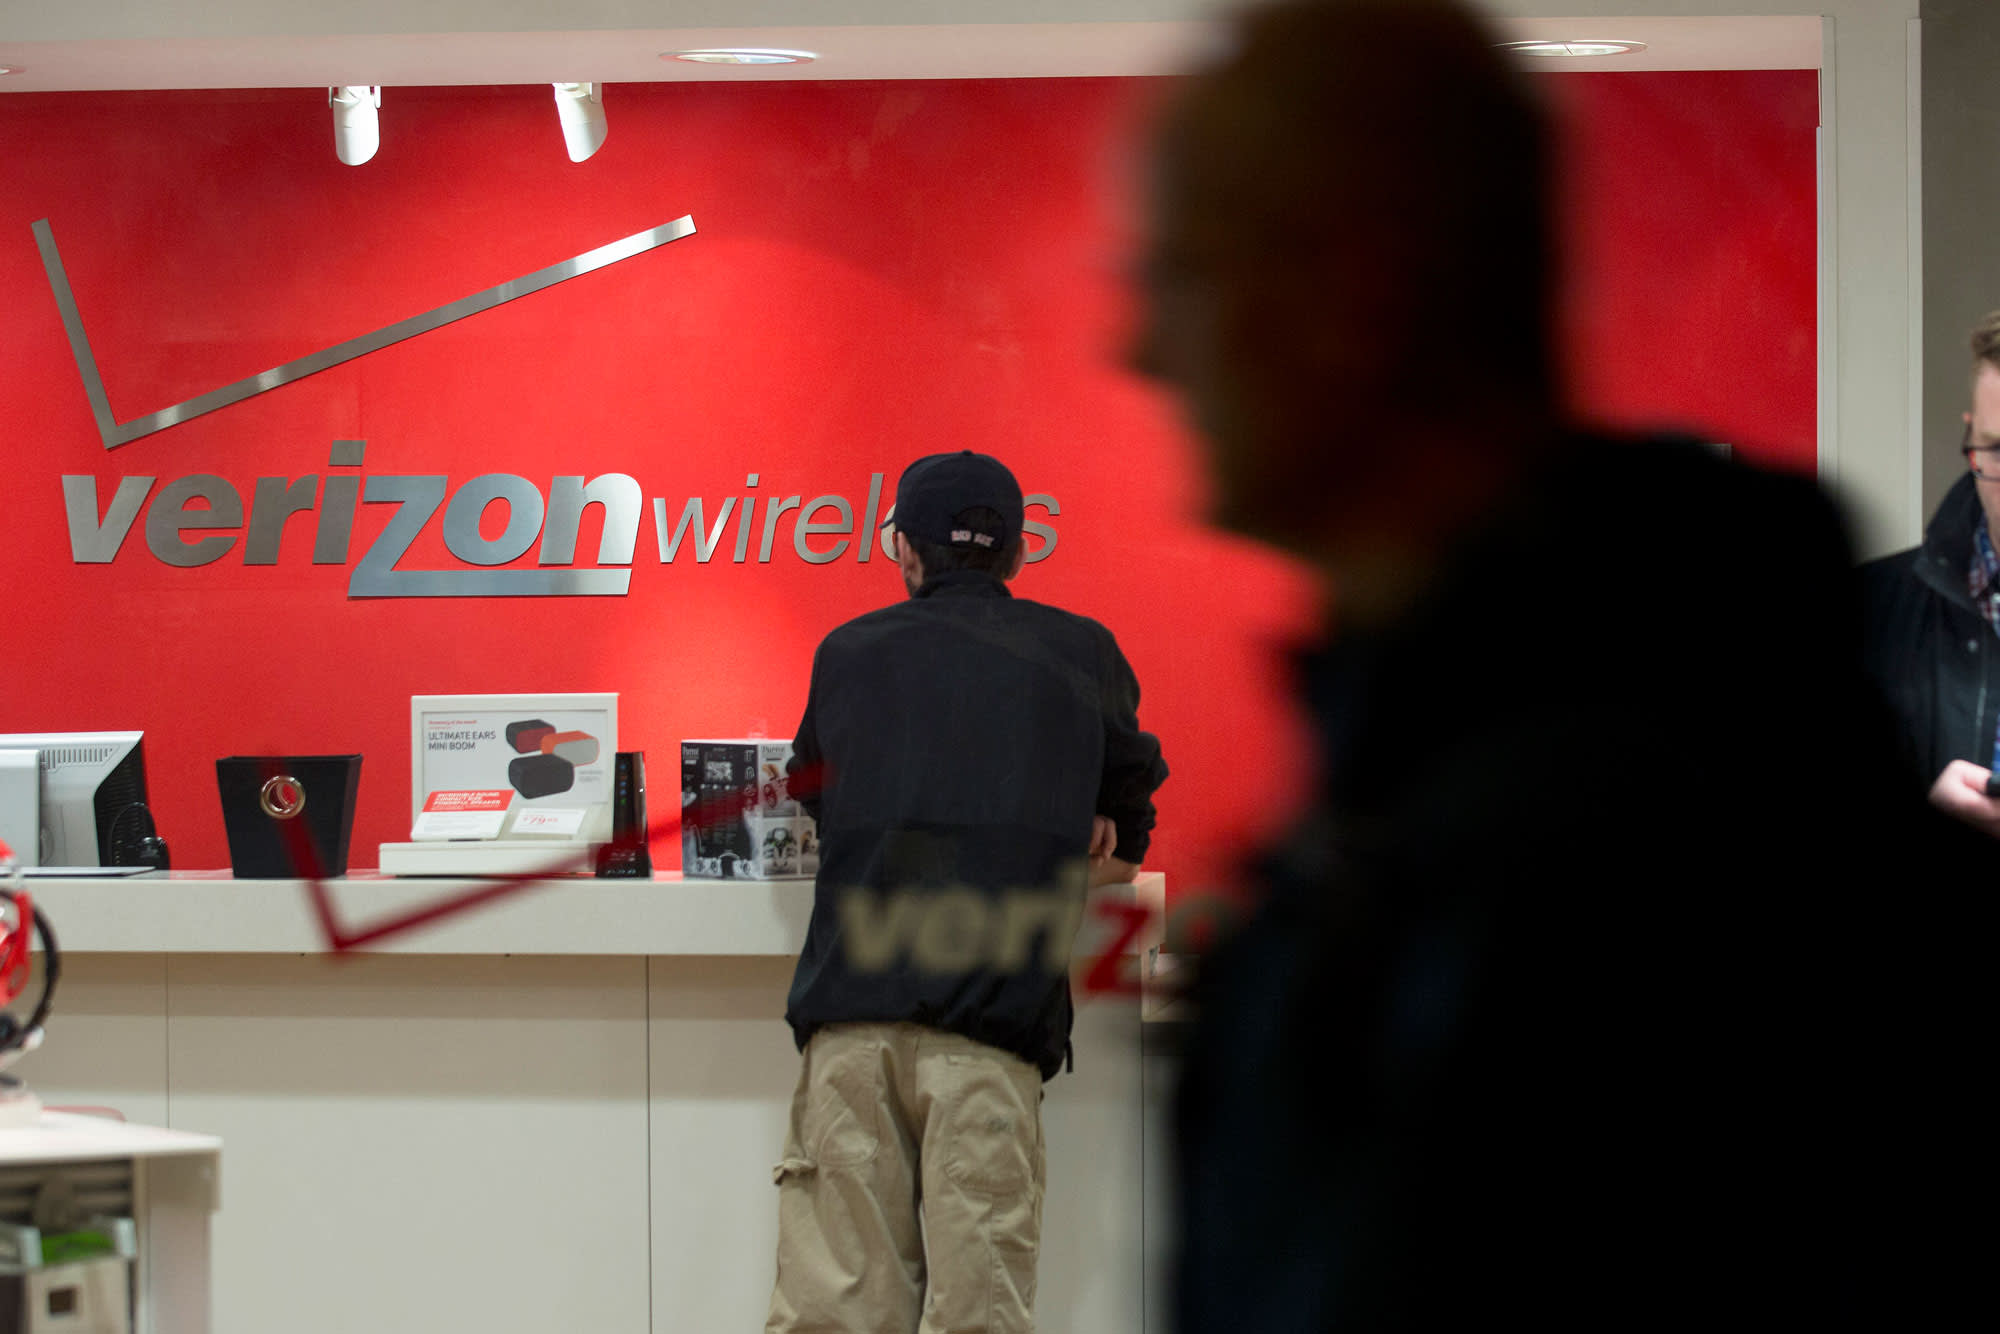 Verizon shares fall after Citi downgrades the stock, predicting lower wireless pricing ahead